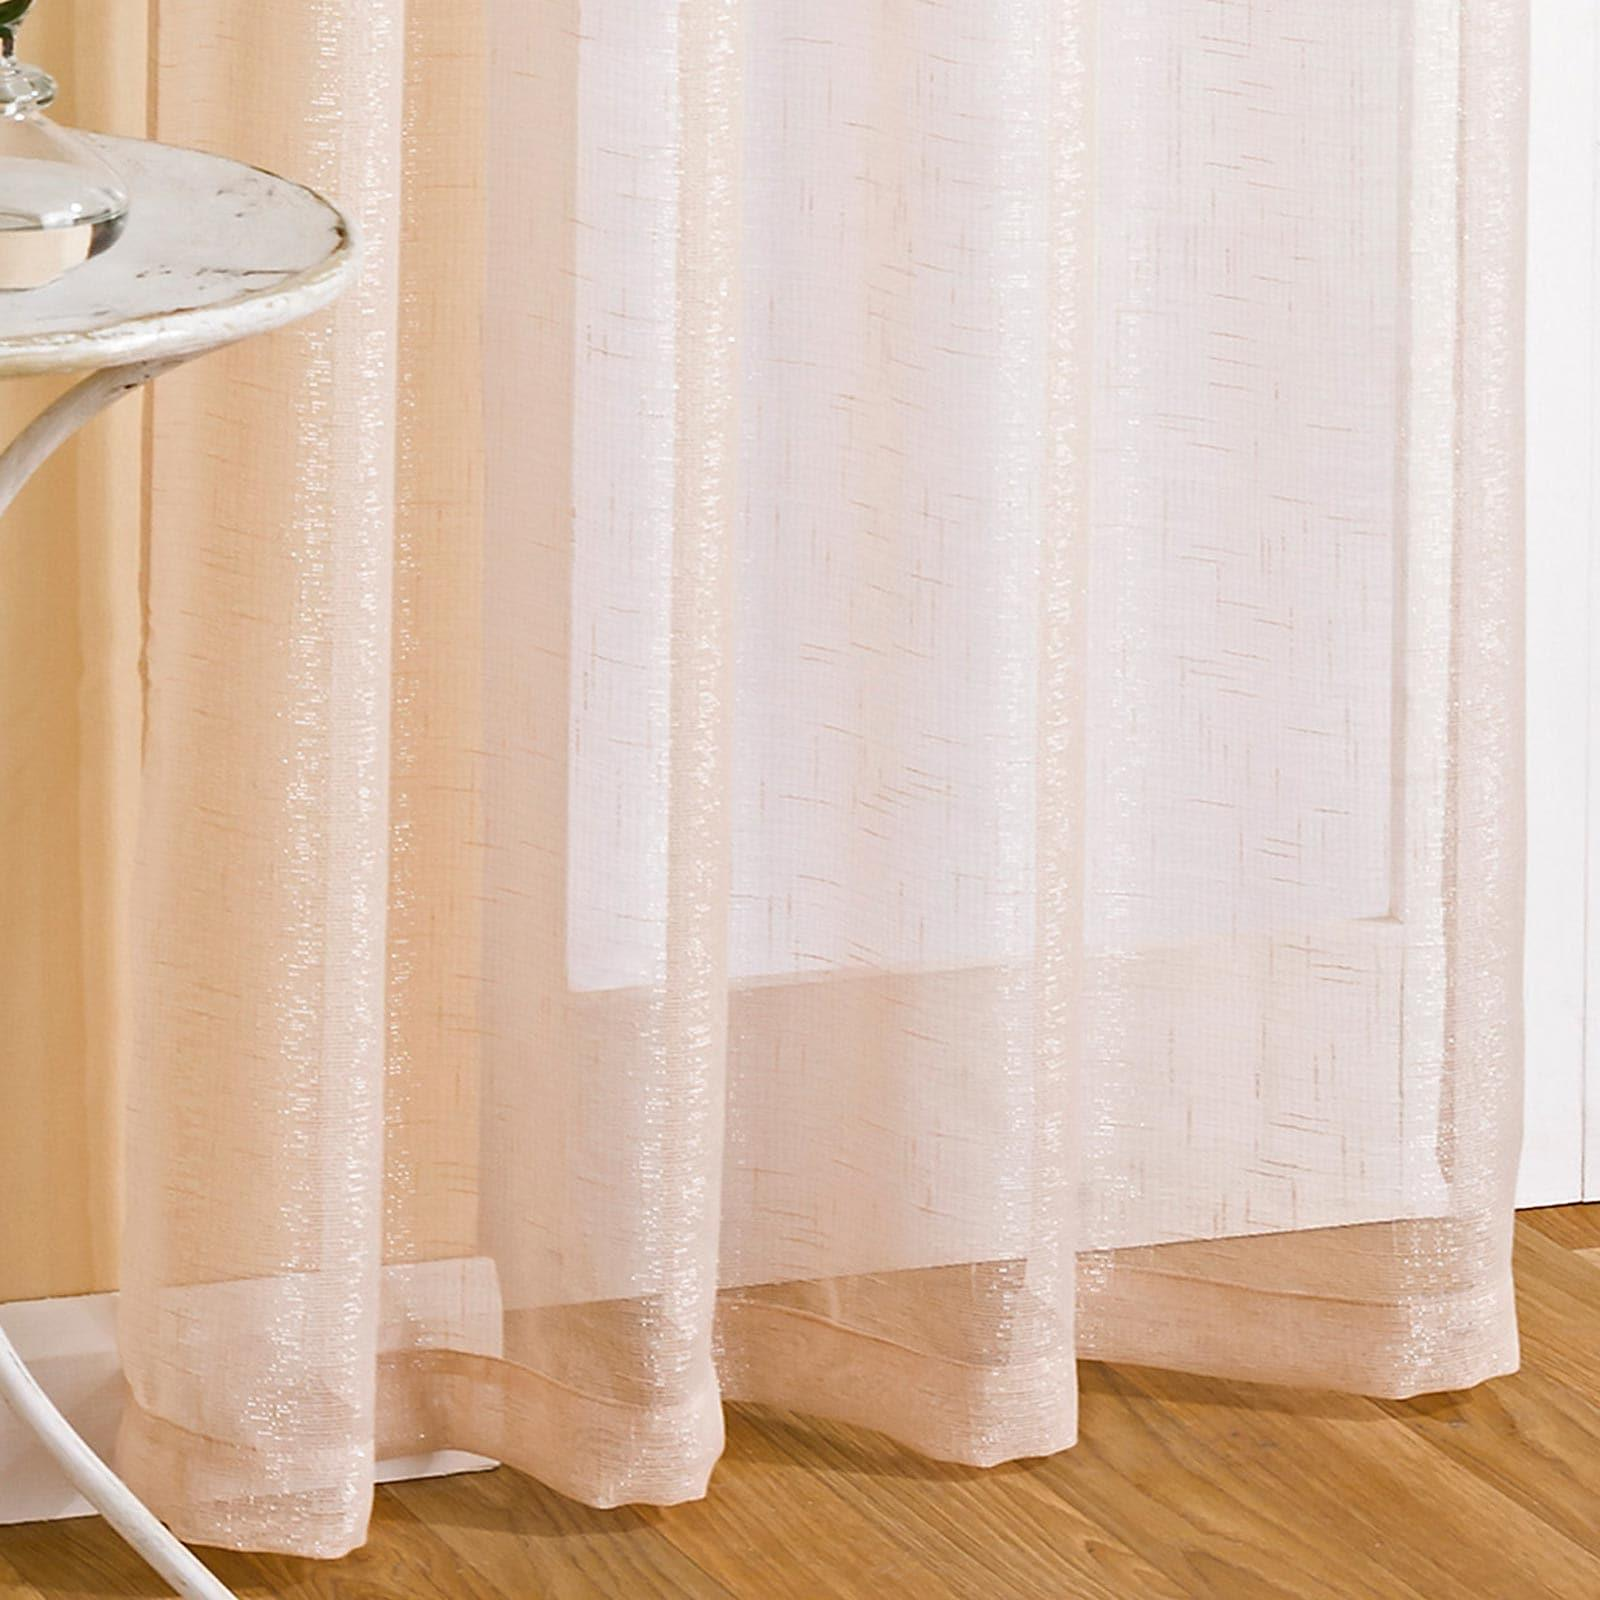 Marrakesh Sparkle Eyelet Voile Curtain Panels Cream -  - Ideal Textiles